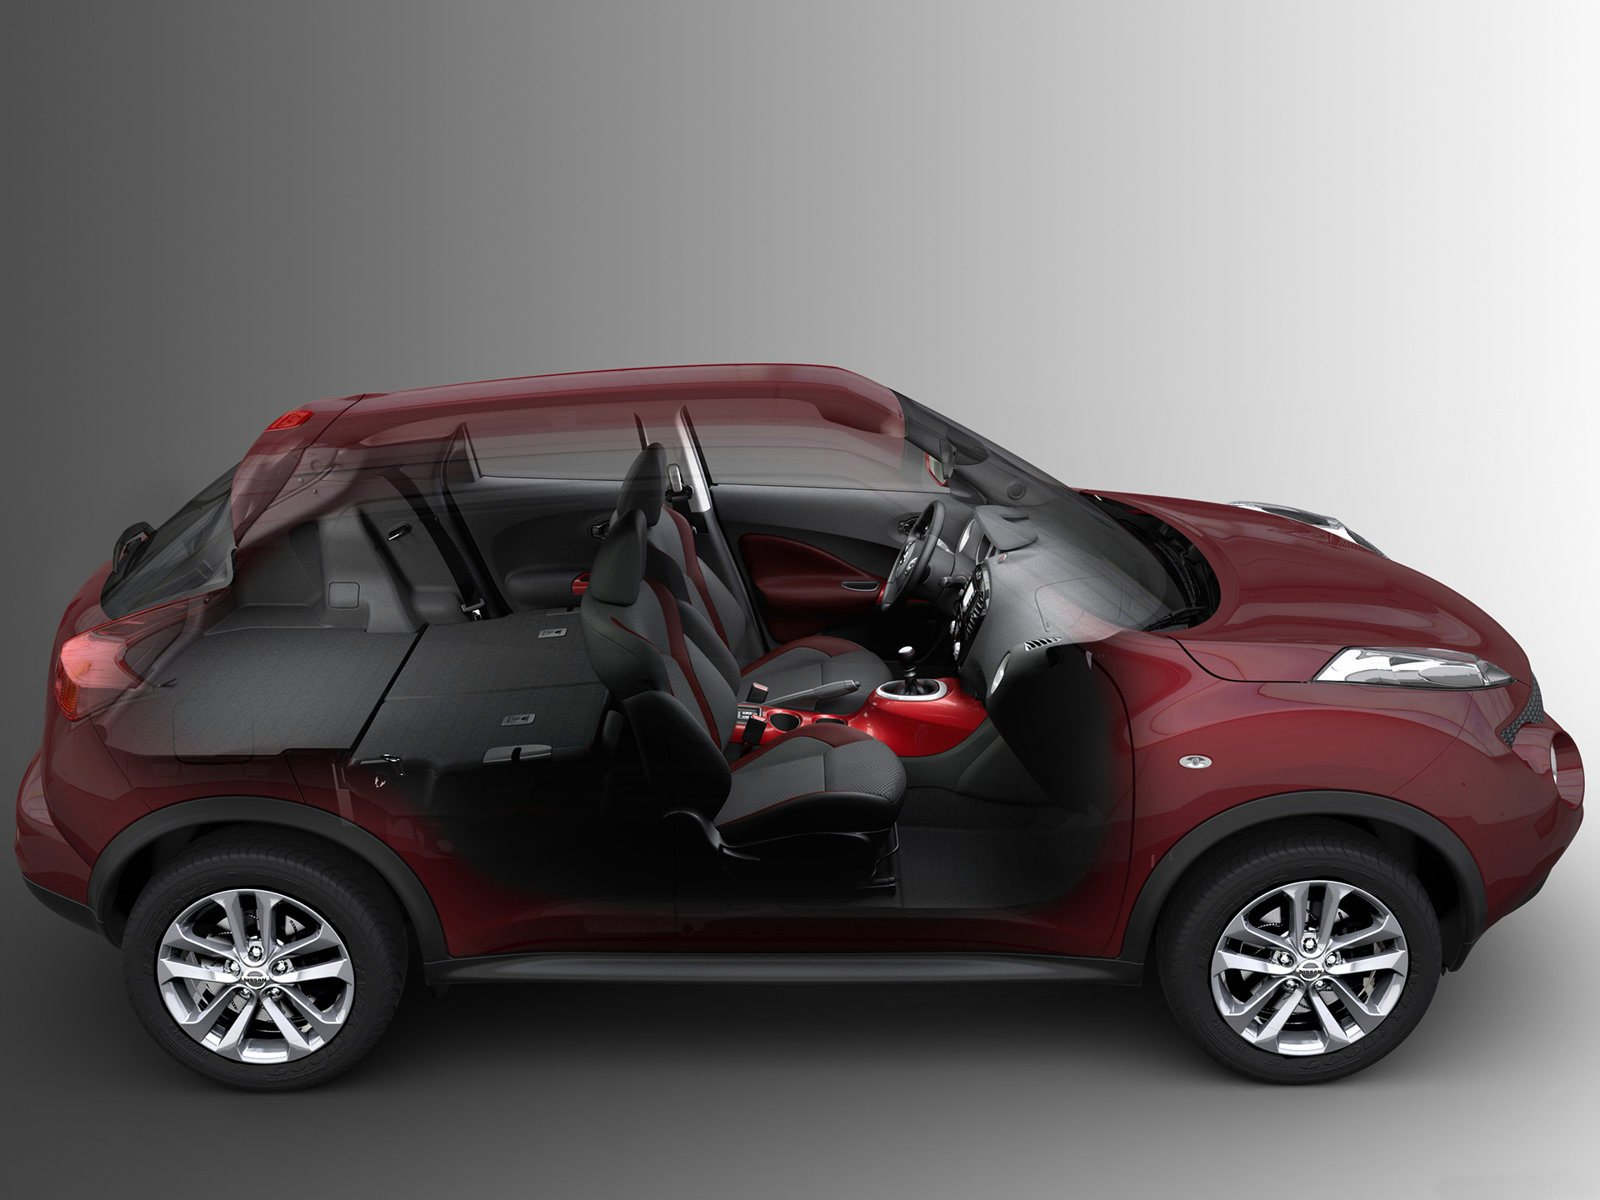 New 2011 Nissan Juke Japanese Car Photos Accident Lawyers Info On This Month